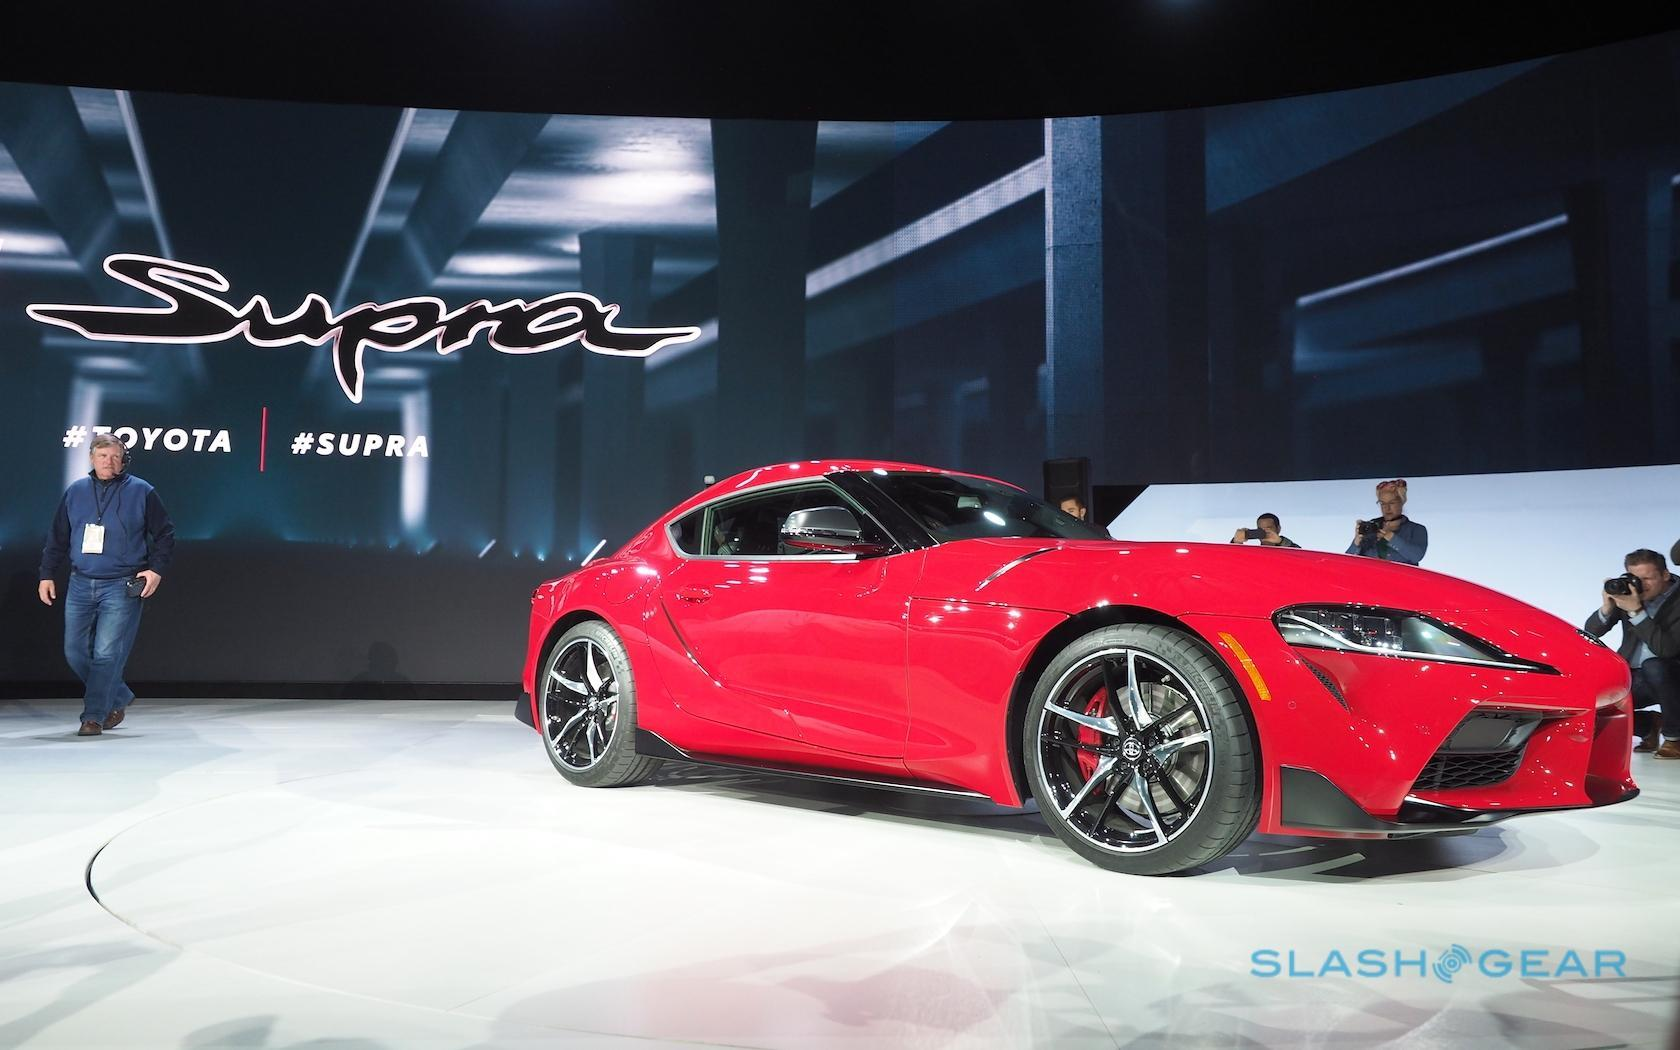 The Toyota Supra is back: 5 things you need to know - SlashGear